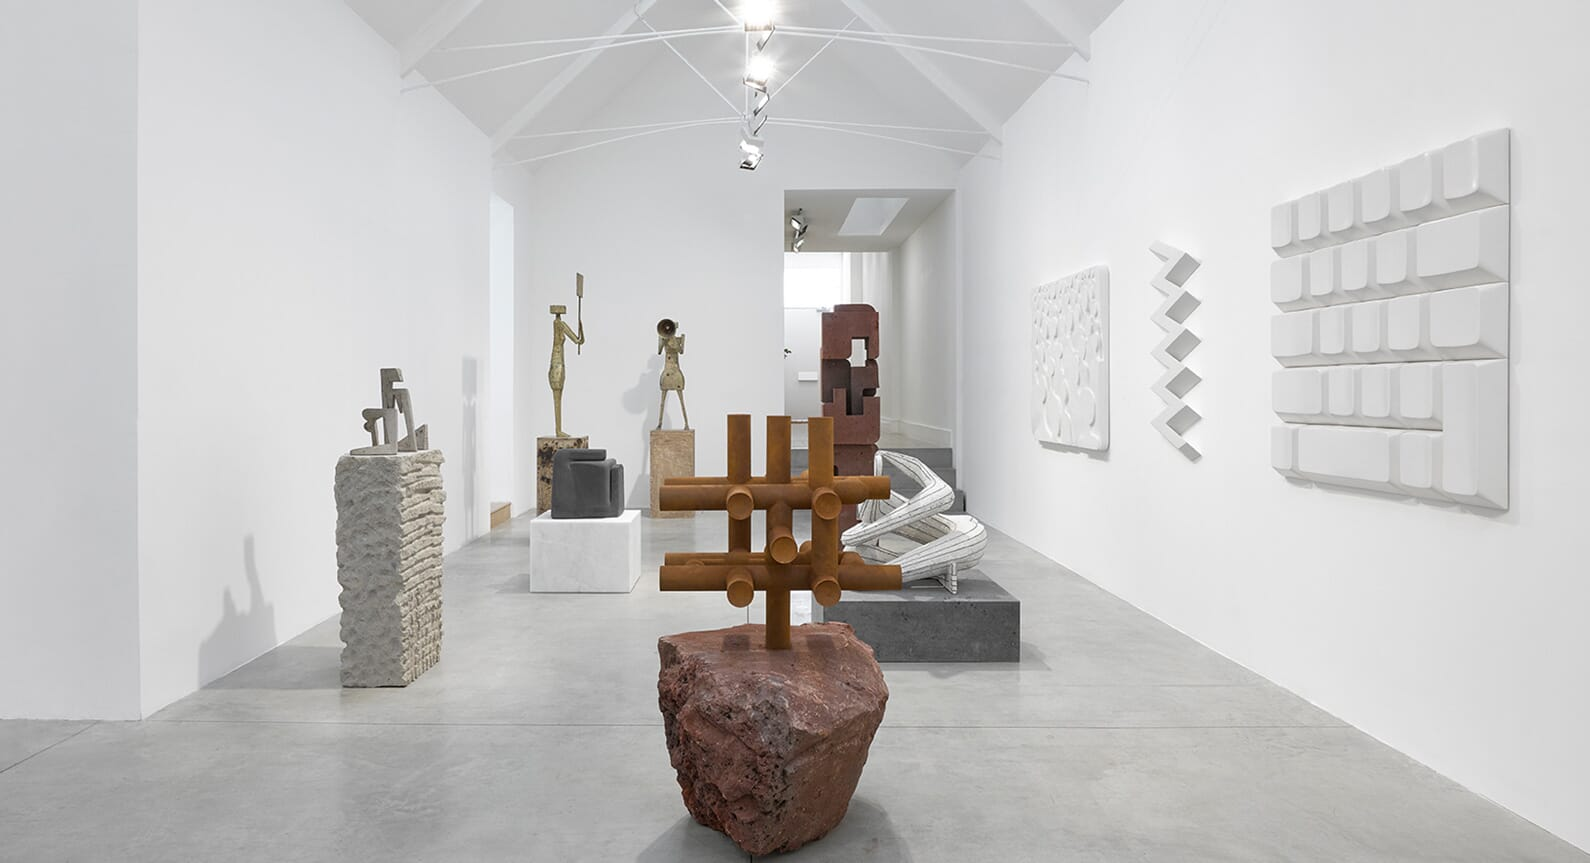 Pedro Reyes Celebrates Political Protest At The Lisson Gallery